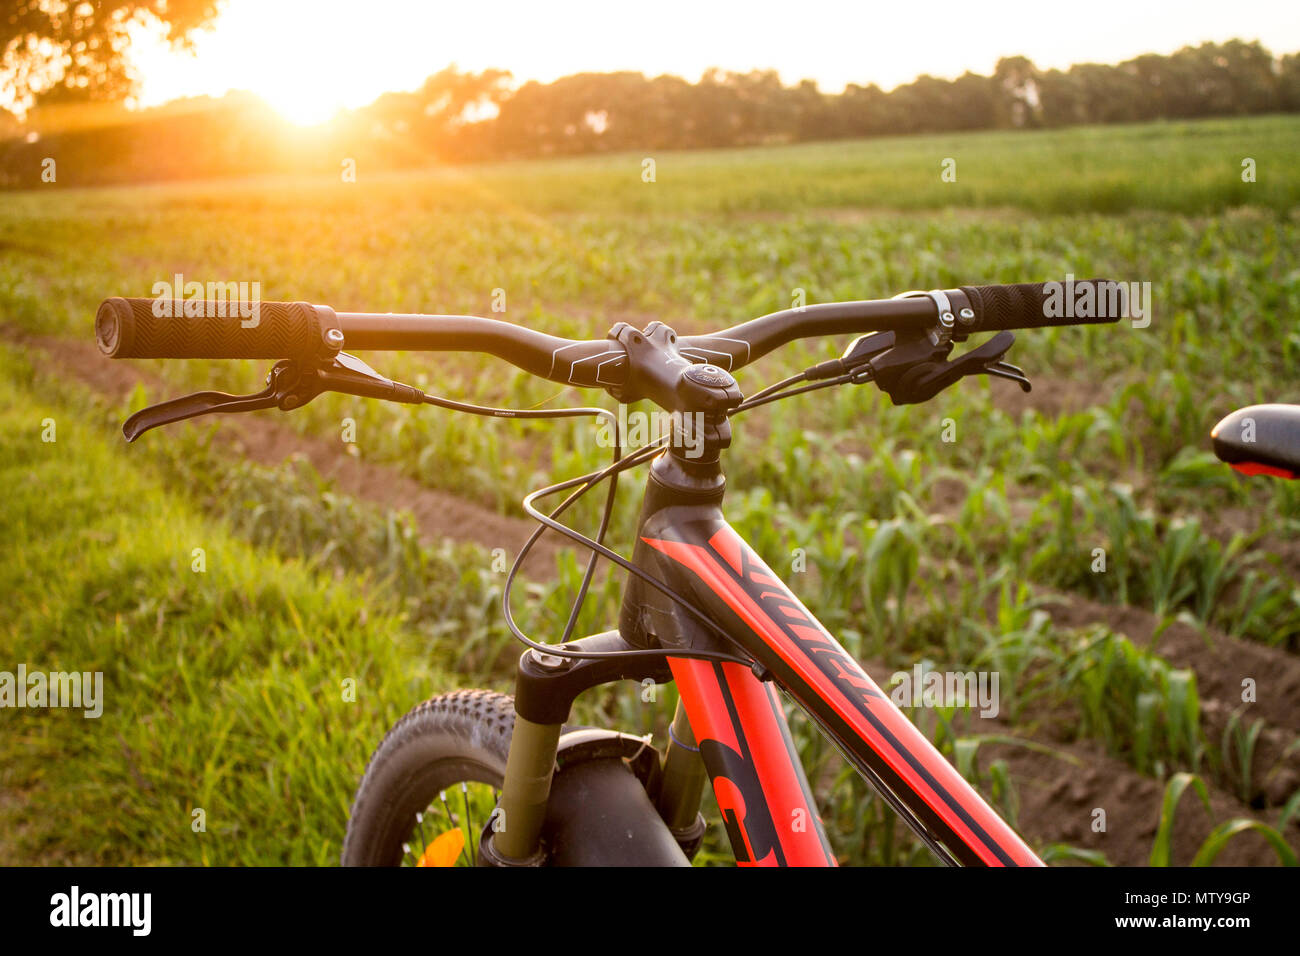 Tlaxcala, Mexico - May 27.2018. Giant is a Taiwanese bicycle manufacturer that is recognized as the world's largest bicycle manufacturer - Stock Image